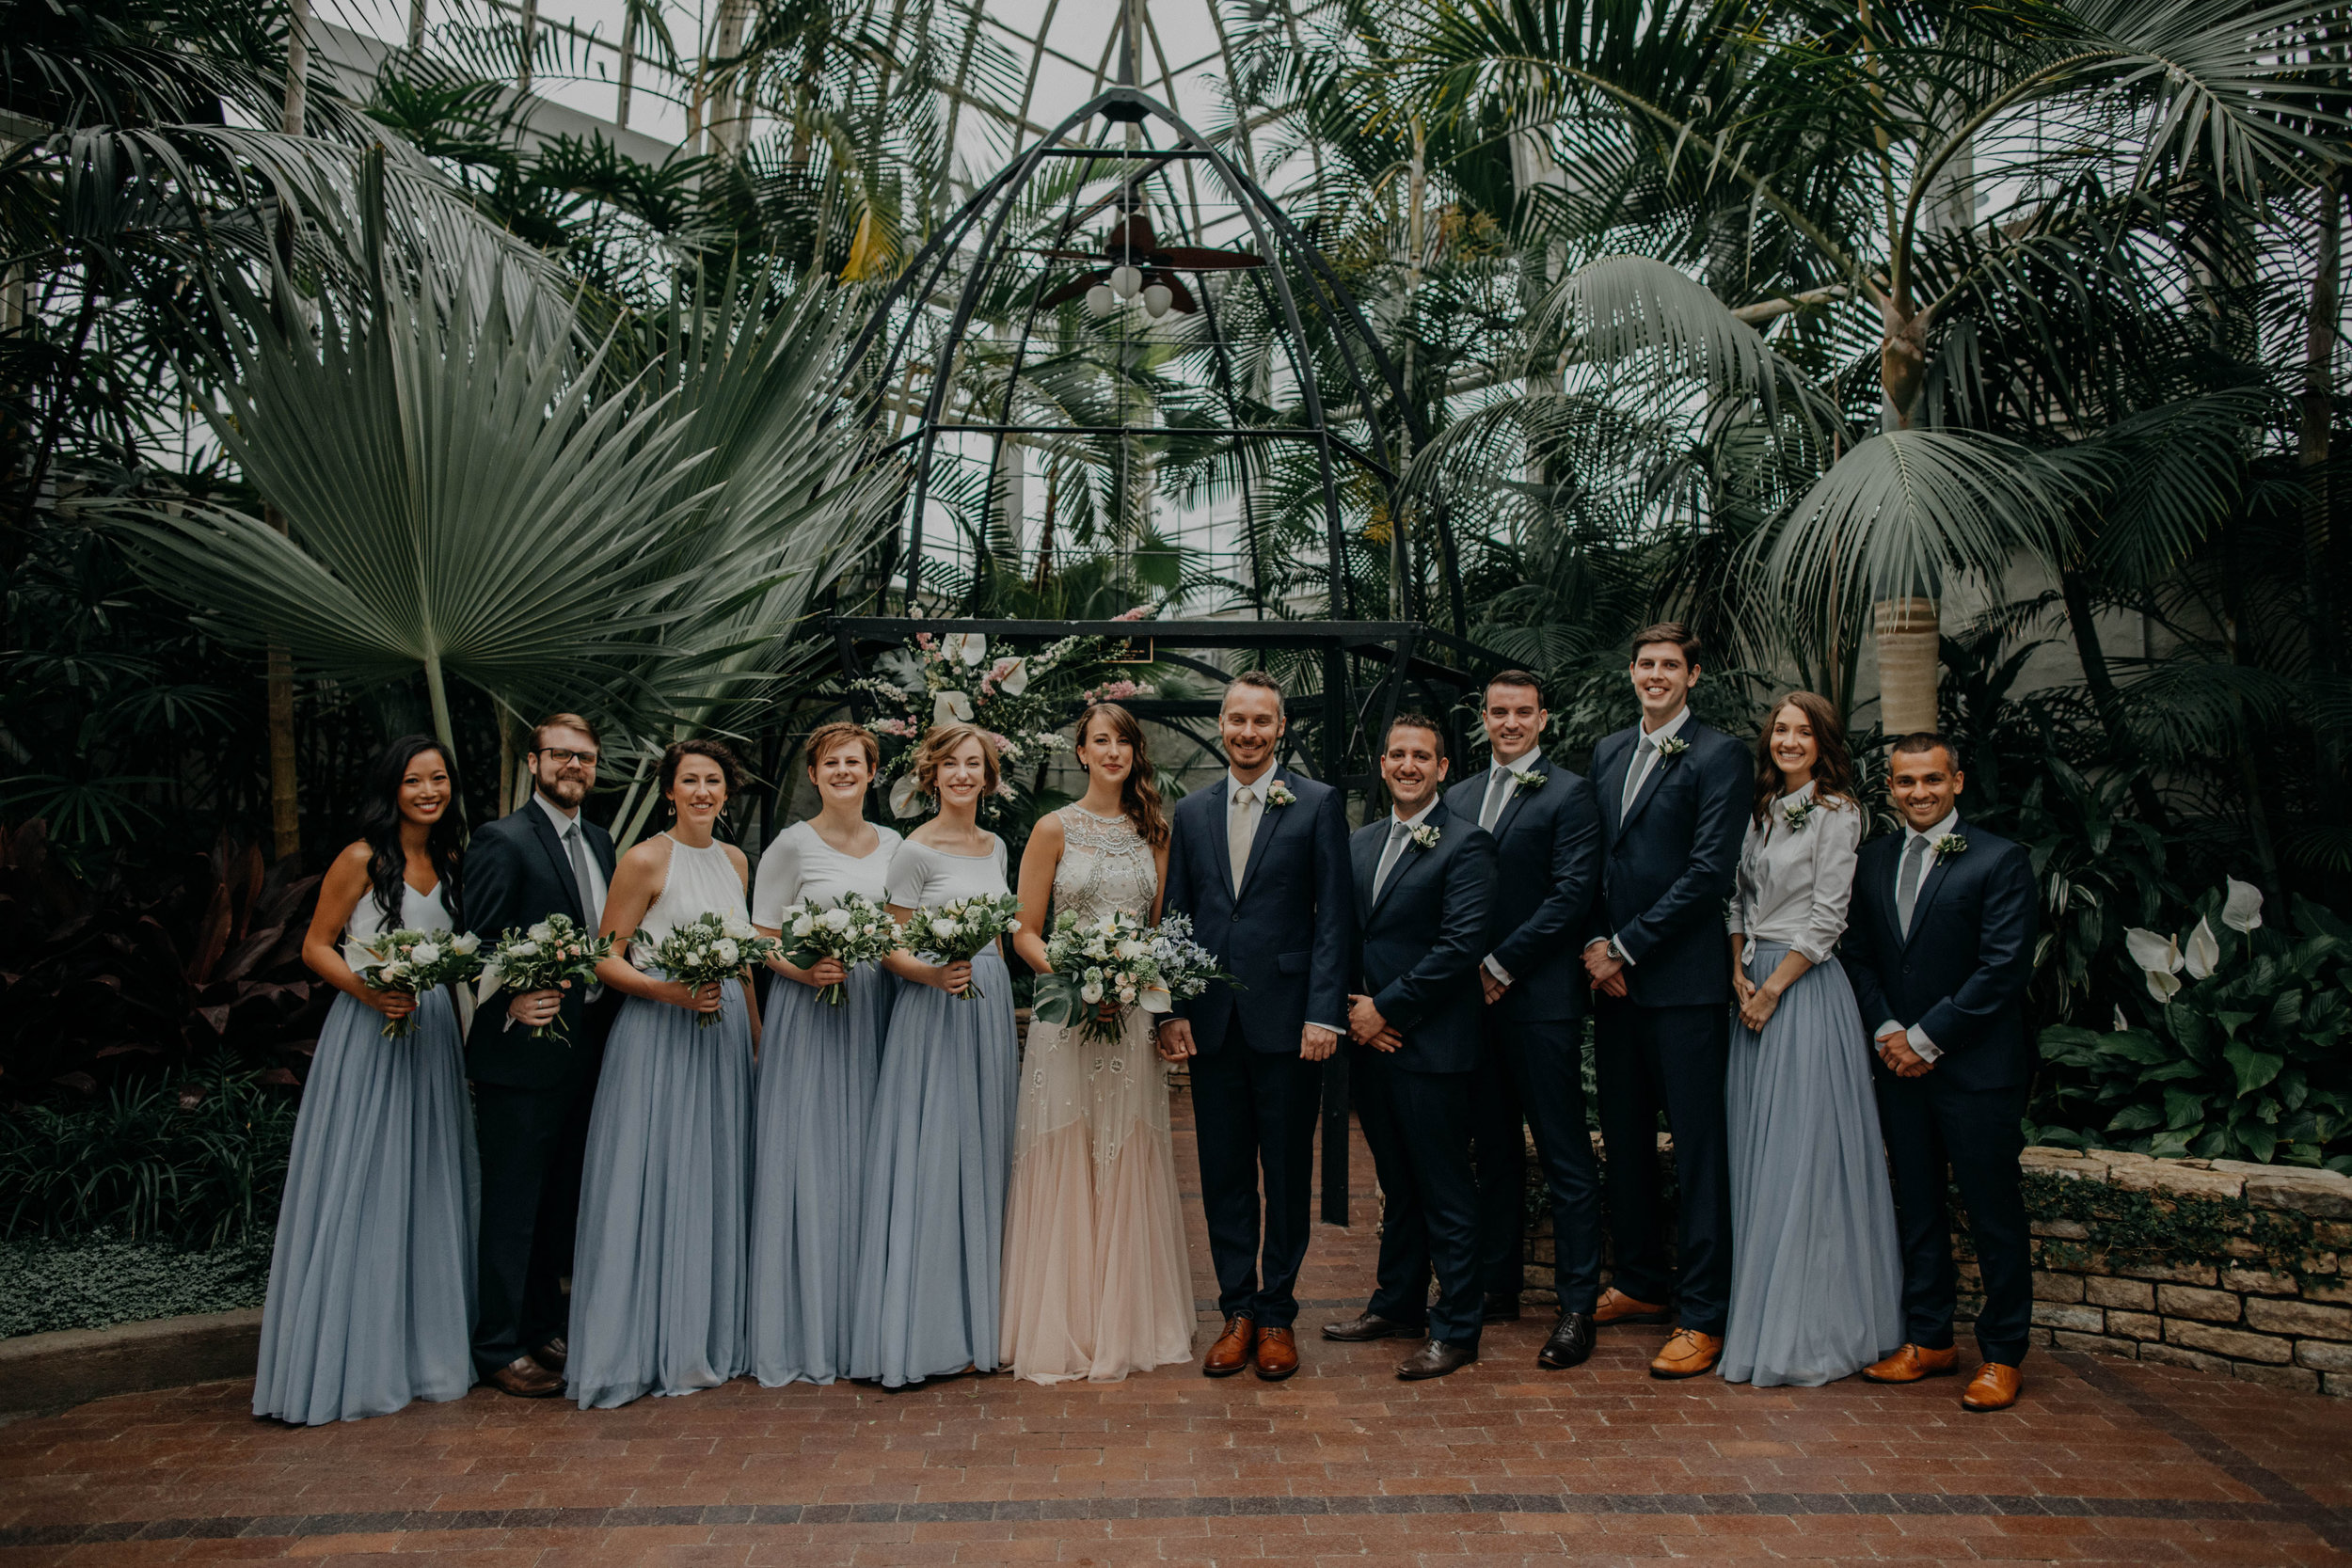 franklin park conservatory wedding columbus ohio wedding photographer grace e jones photography214.jpg